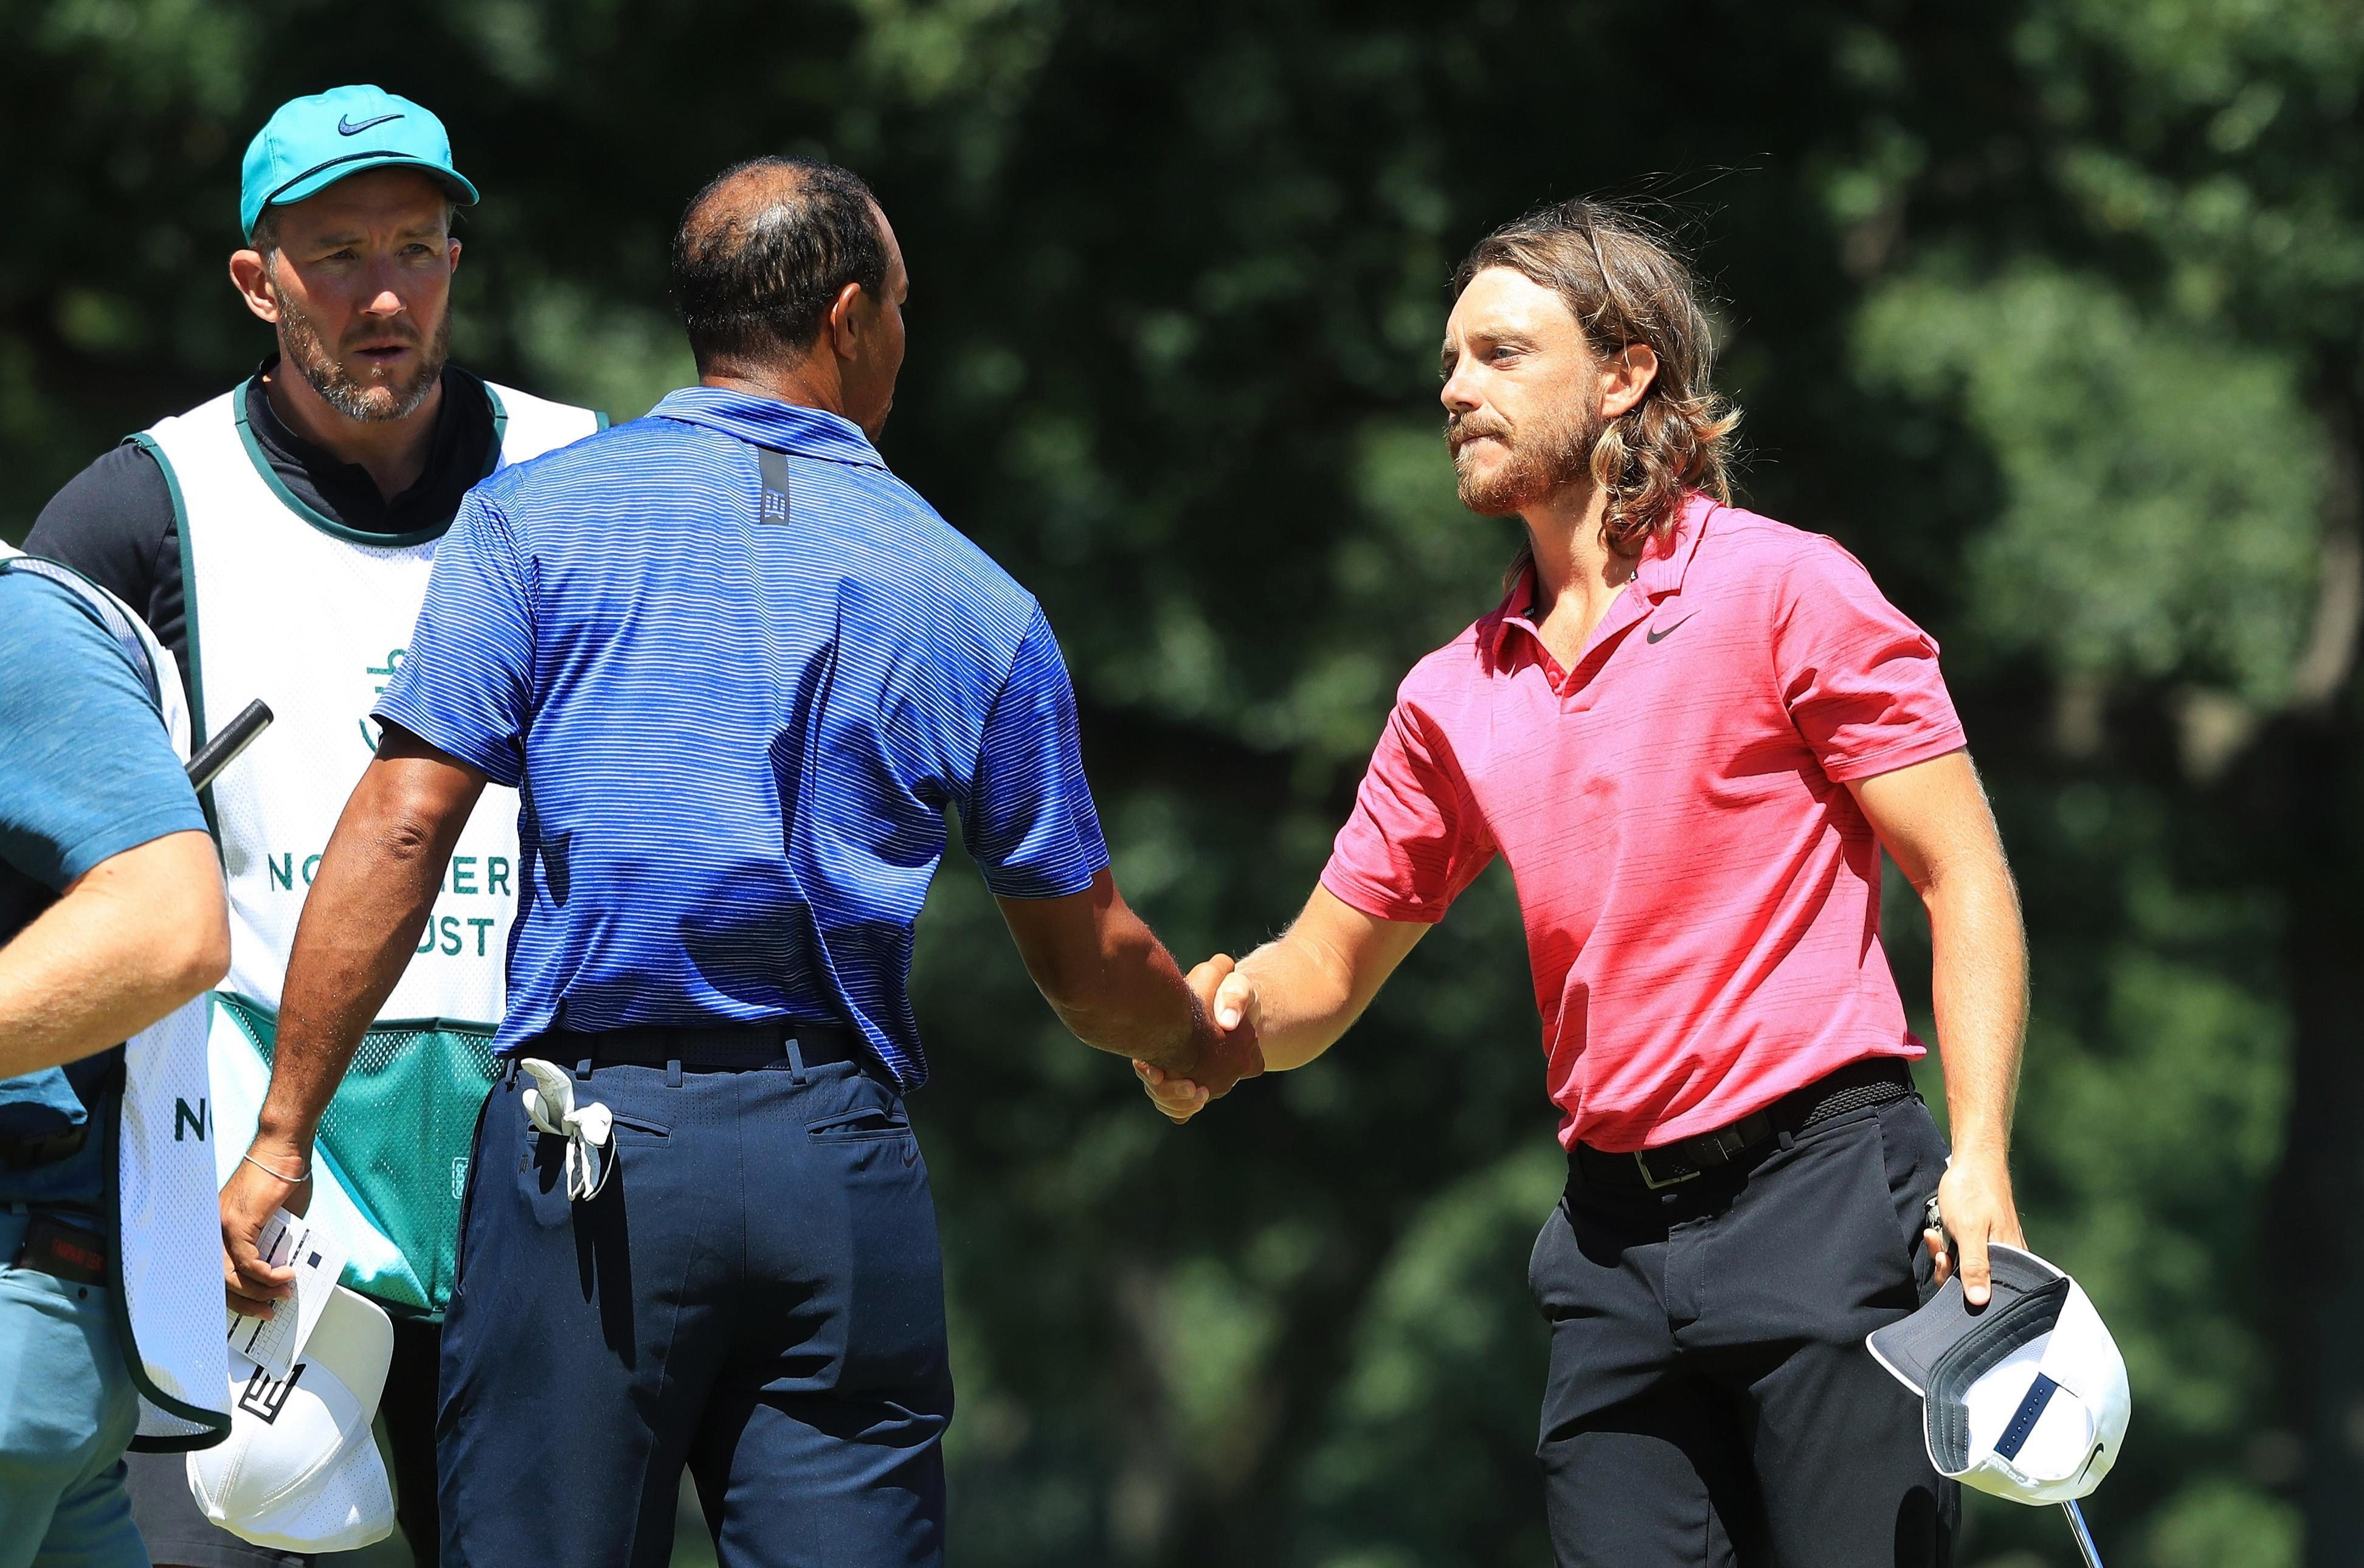 Woods played alongside Tommy Fleetwood at the opening day of the Northern Trust